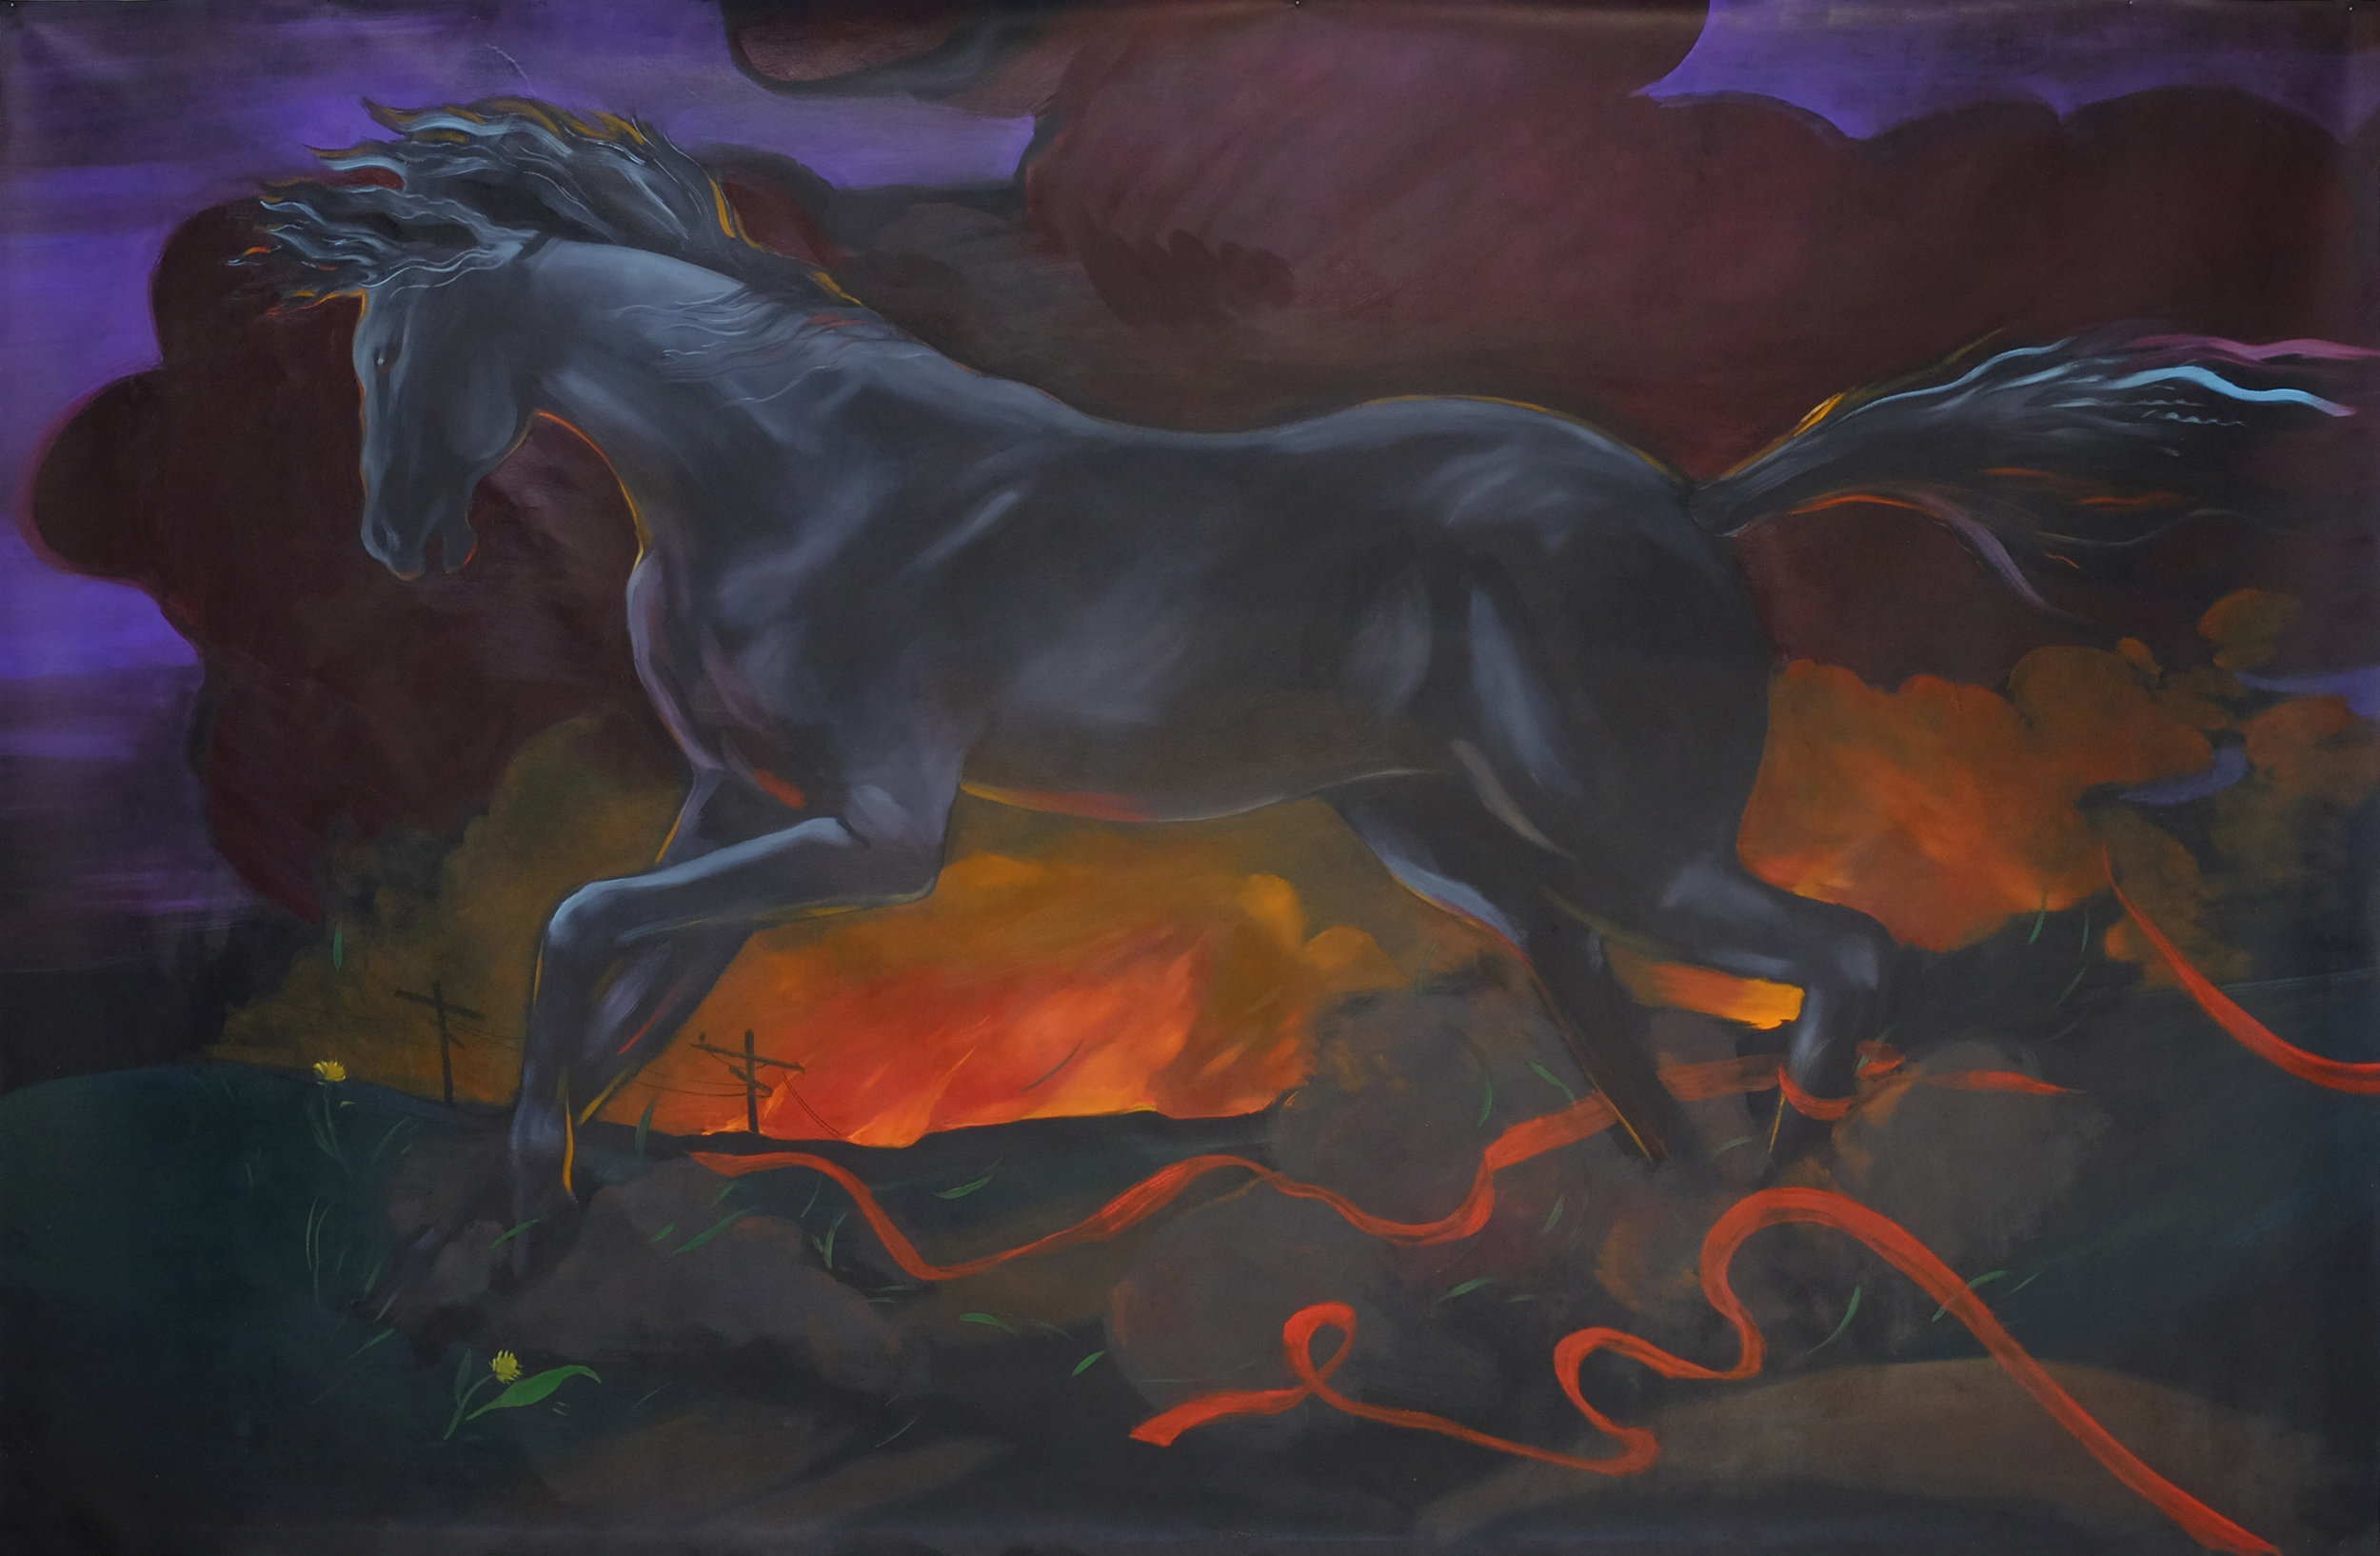 Haley Josephs   Pale Horse, 2017  Oil on canvas  65.5 x 99 inches